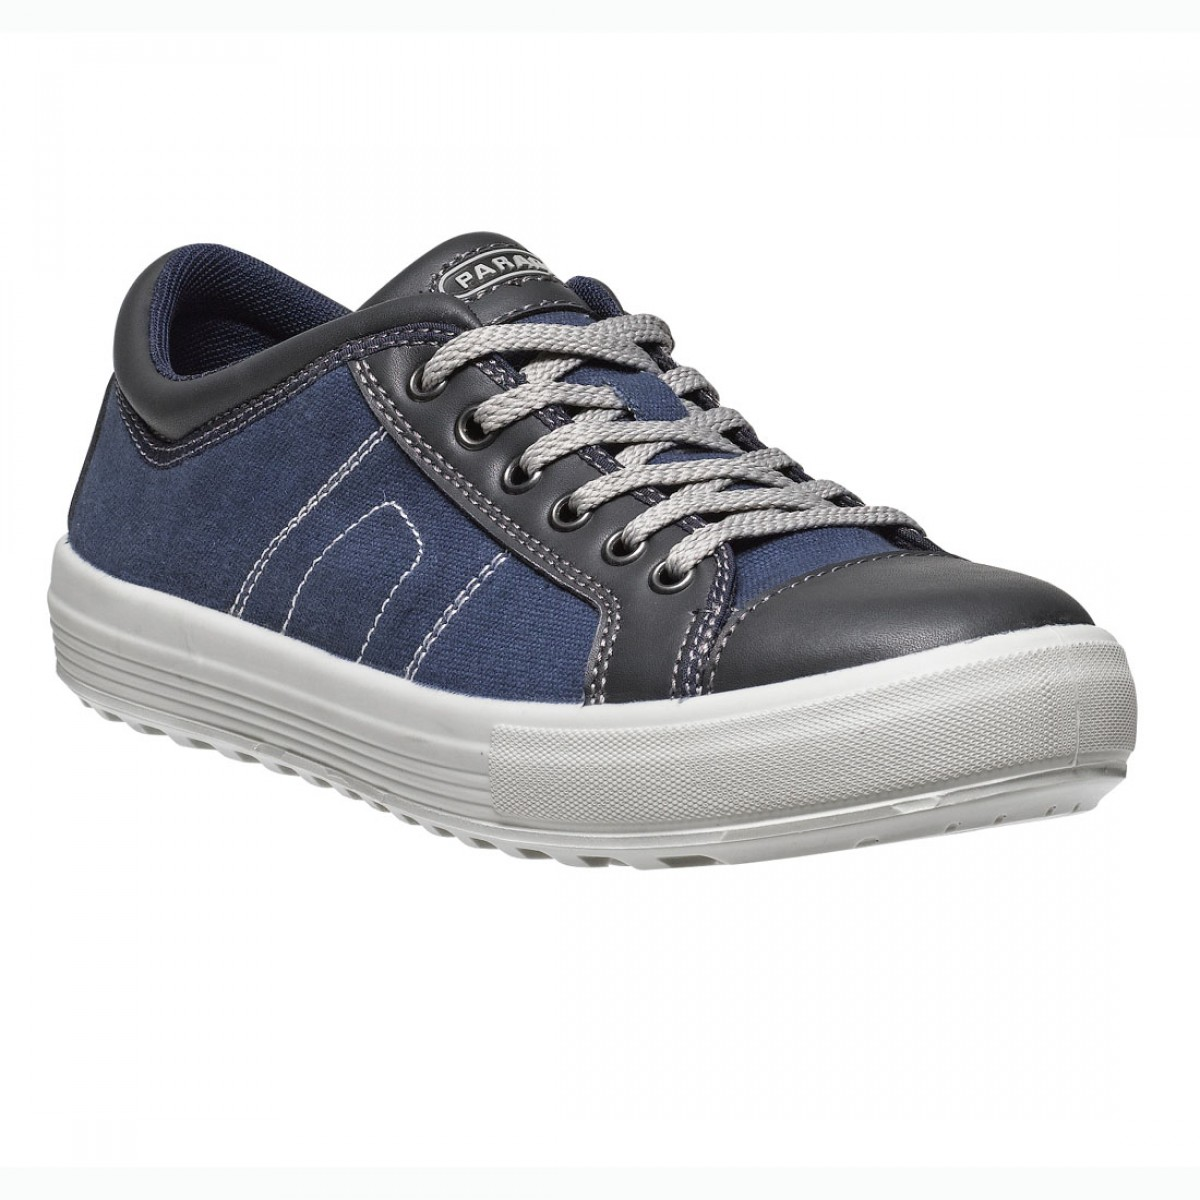 parade footwear vance unisex navy and black canvas safety